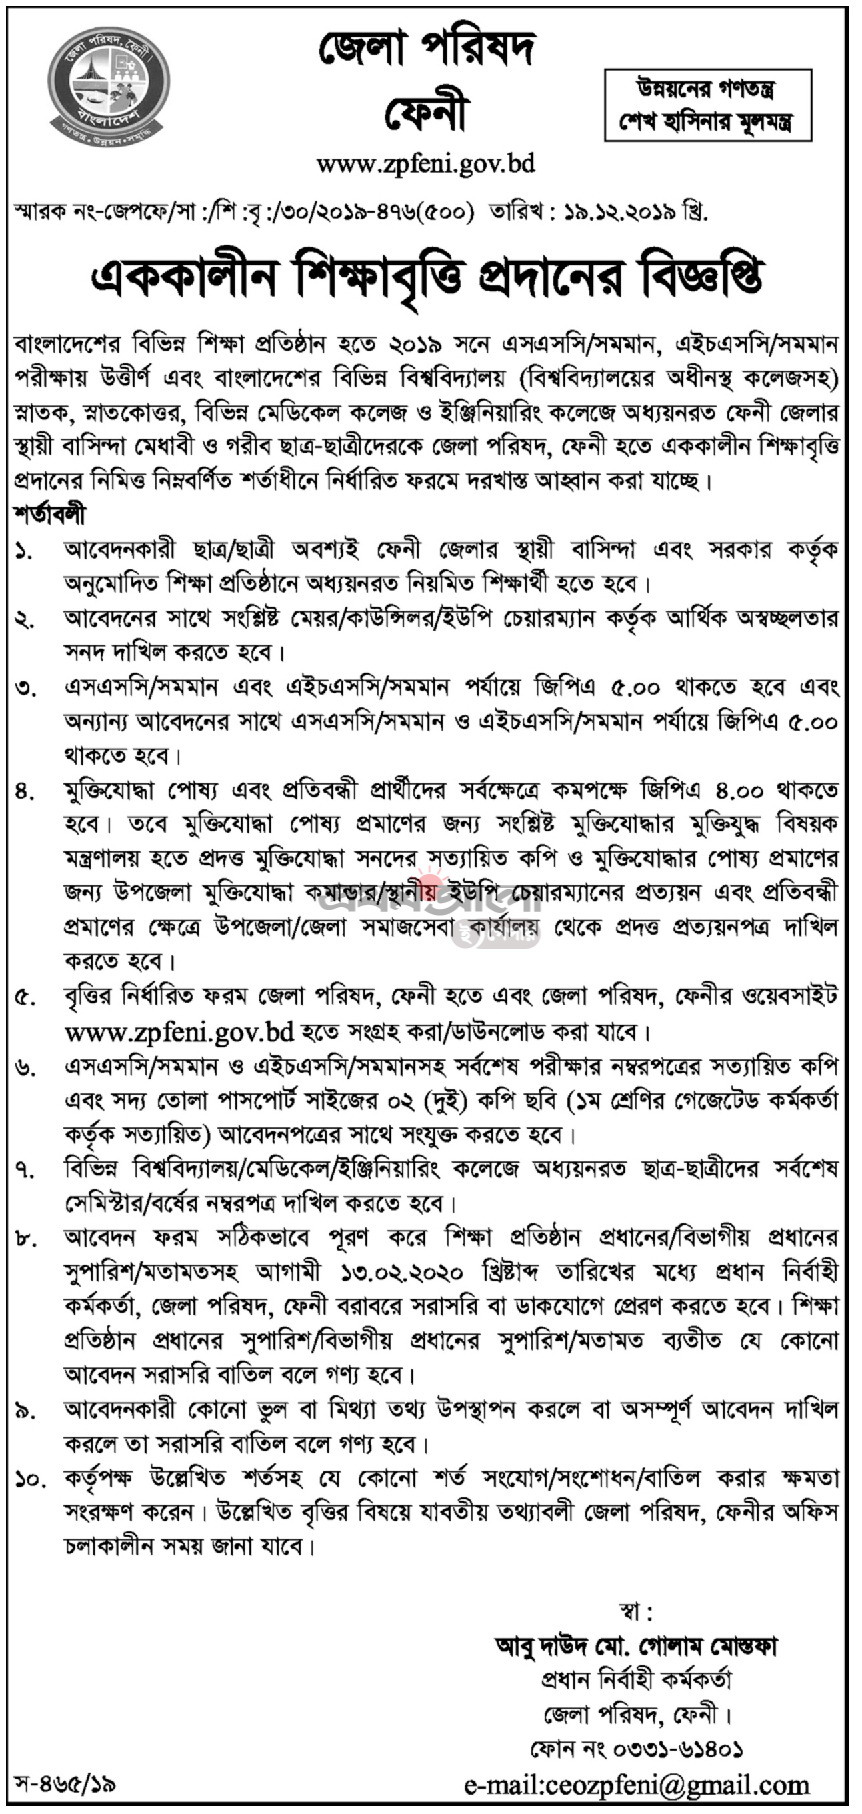 Zila Parishad Scholarship Circular Result 2020 Has Been Published My www.educationsinbd.com website You Can Save Or Download This rangpur, Sirajgonj , Feni Zila Parishad